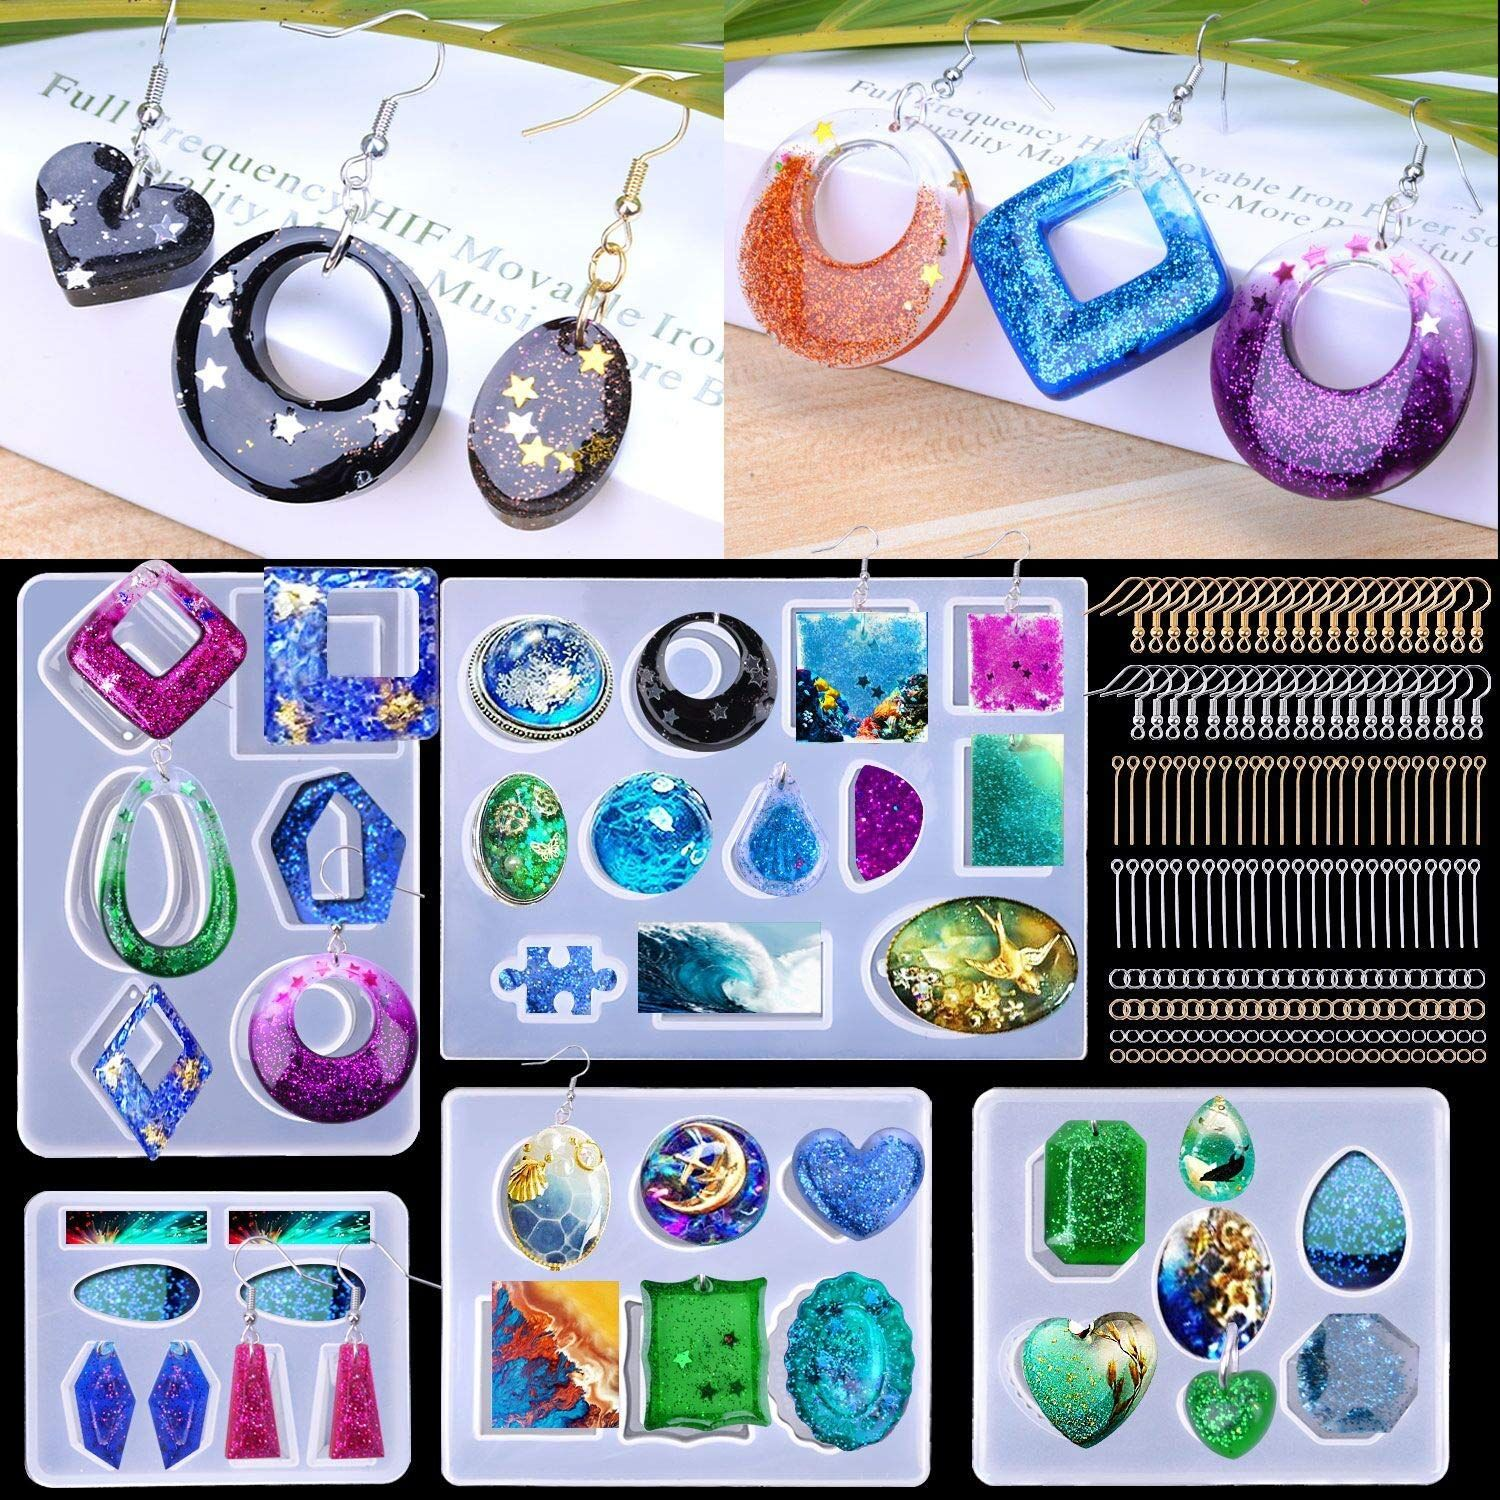 how to make resin earrings without molds